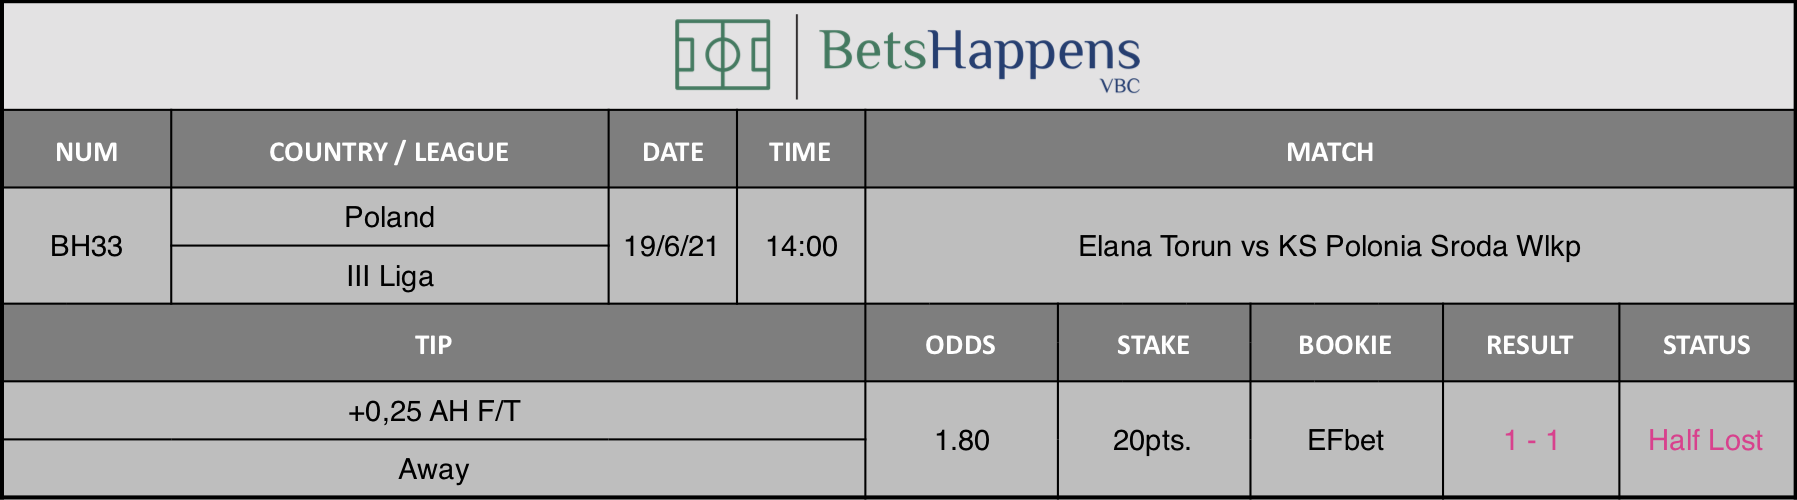 Results of our tip for the Elana Torun vs KS Polonia Sroda Wlkp Match +0,25 AH F/T Away is recommended.